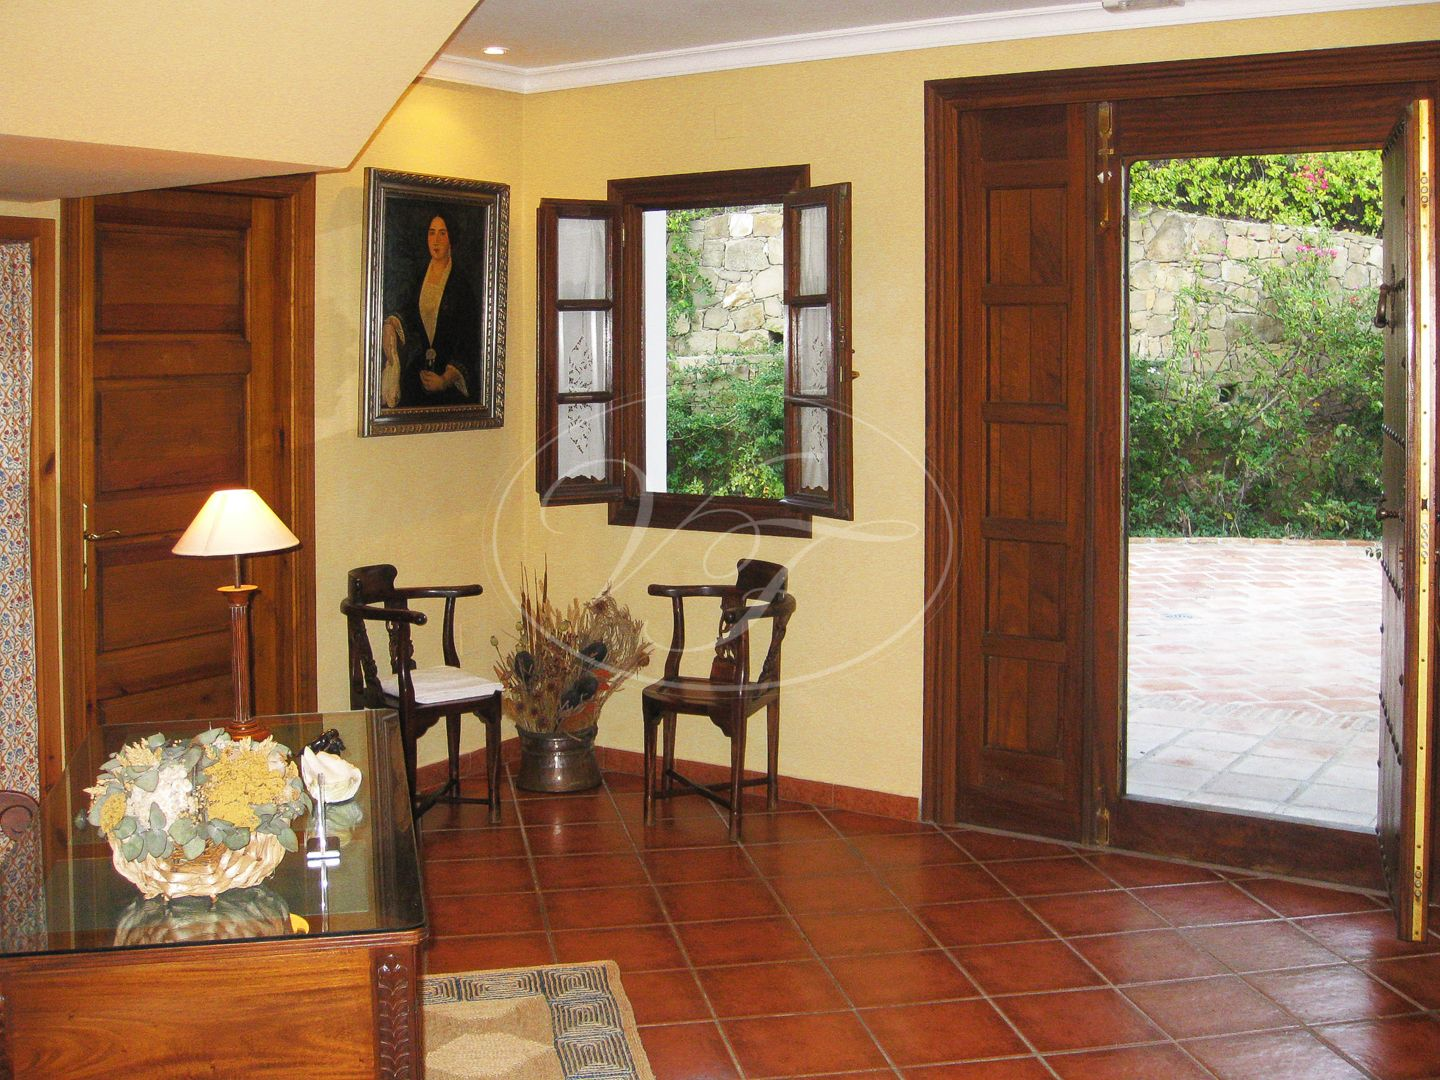 Hotel for sale in Casarabonela